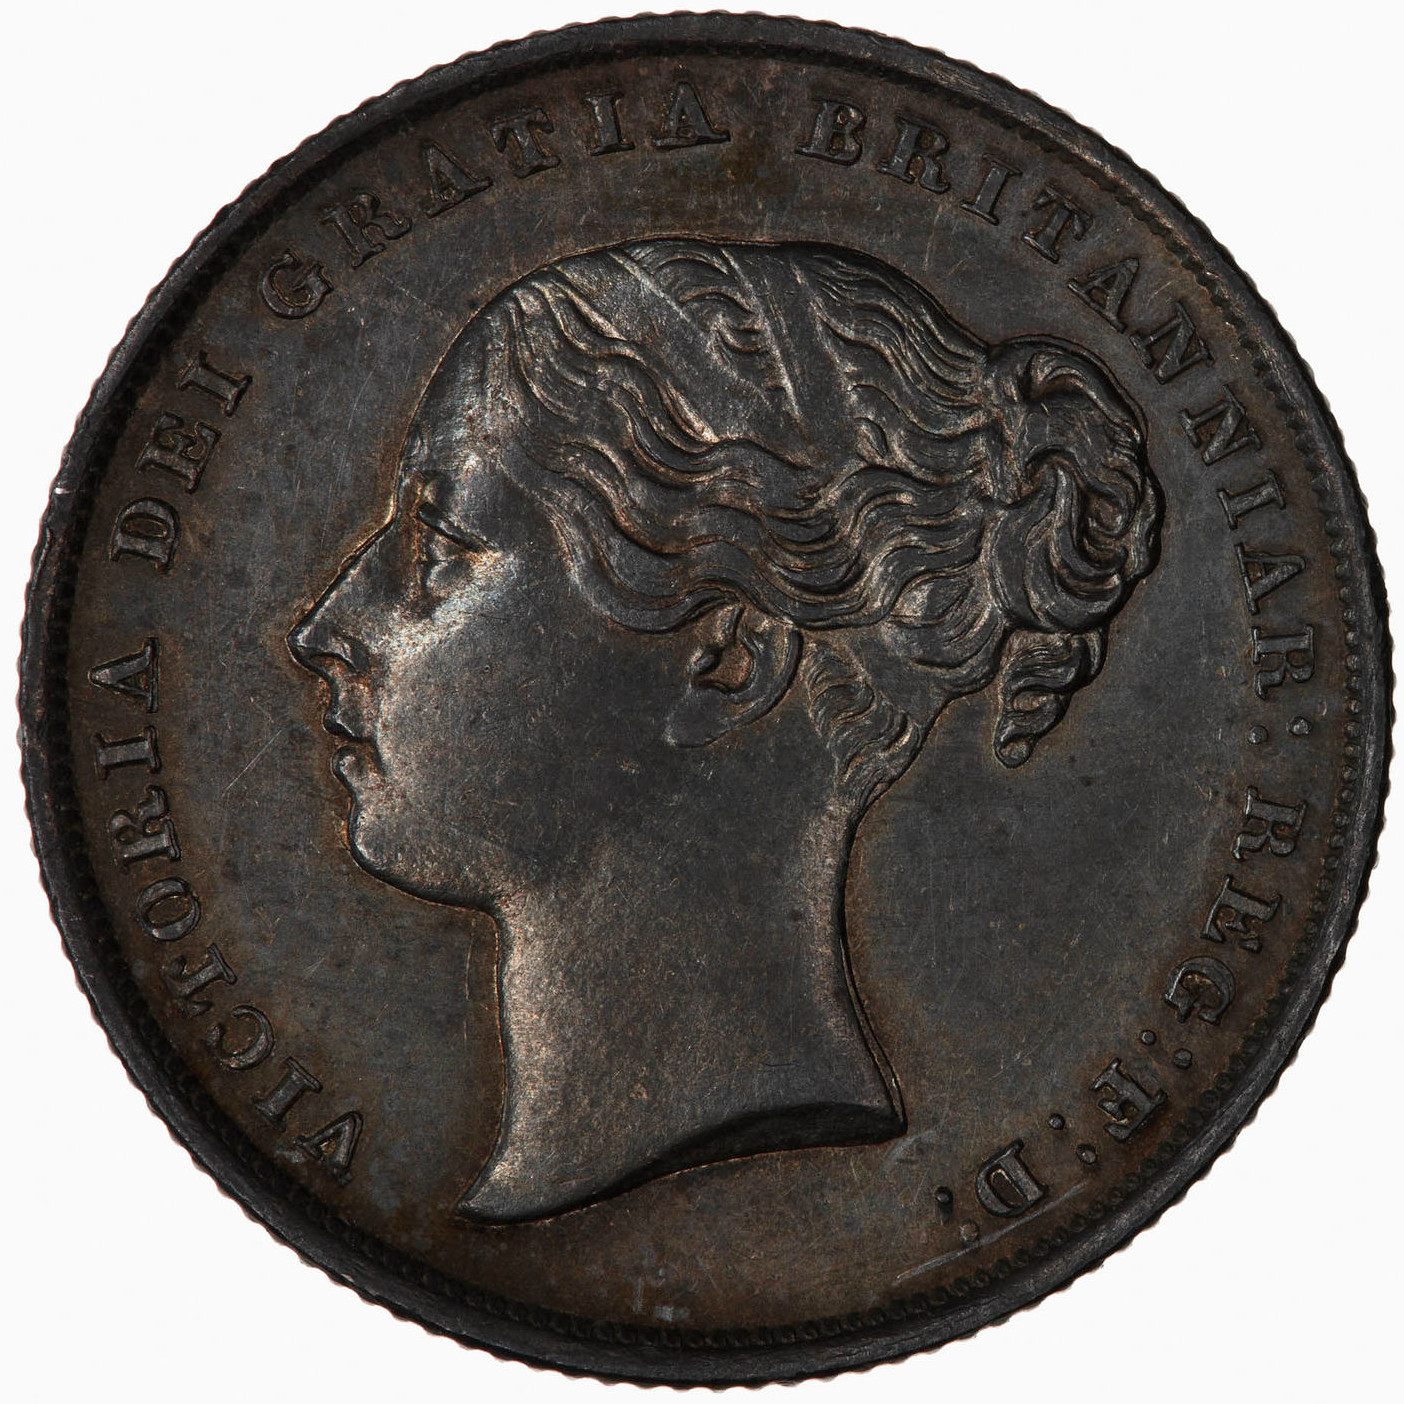 Shilling 1844: Photo Coin - Shilling, Queen Victoria, Great Britain, 1844